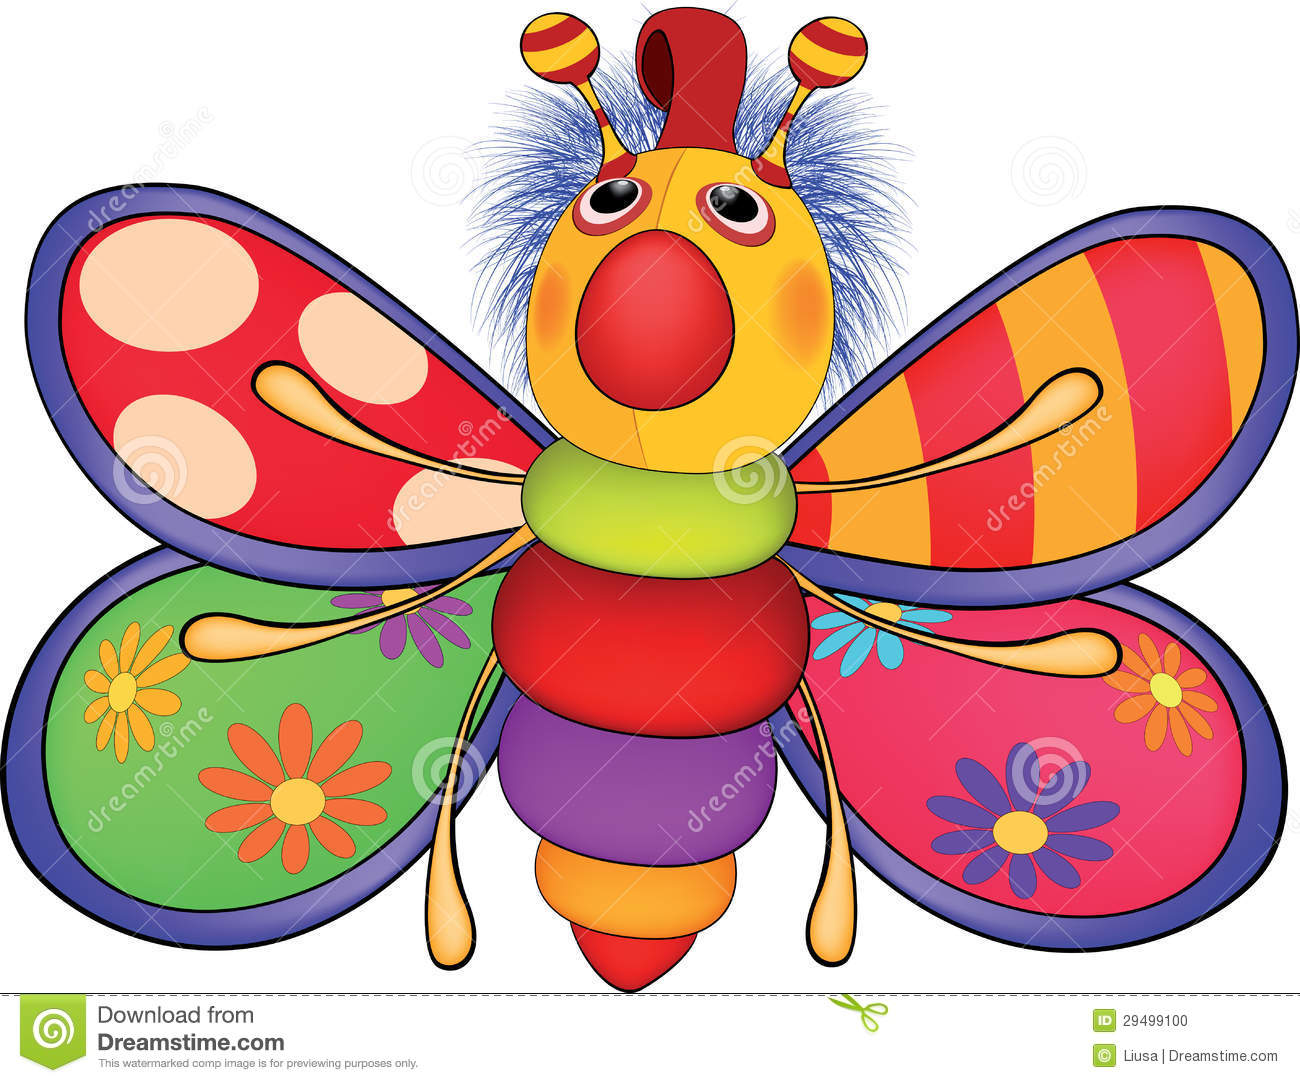 Soft Toys Clip Art : Soft toy the butterfly cartoon stock illustration